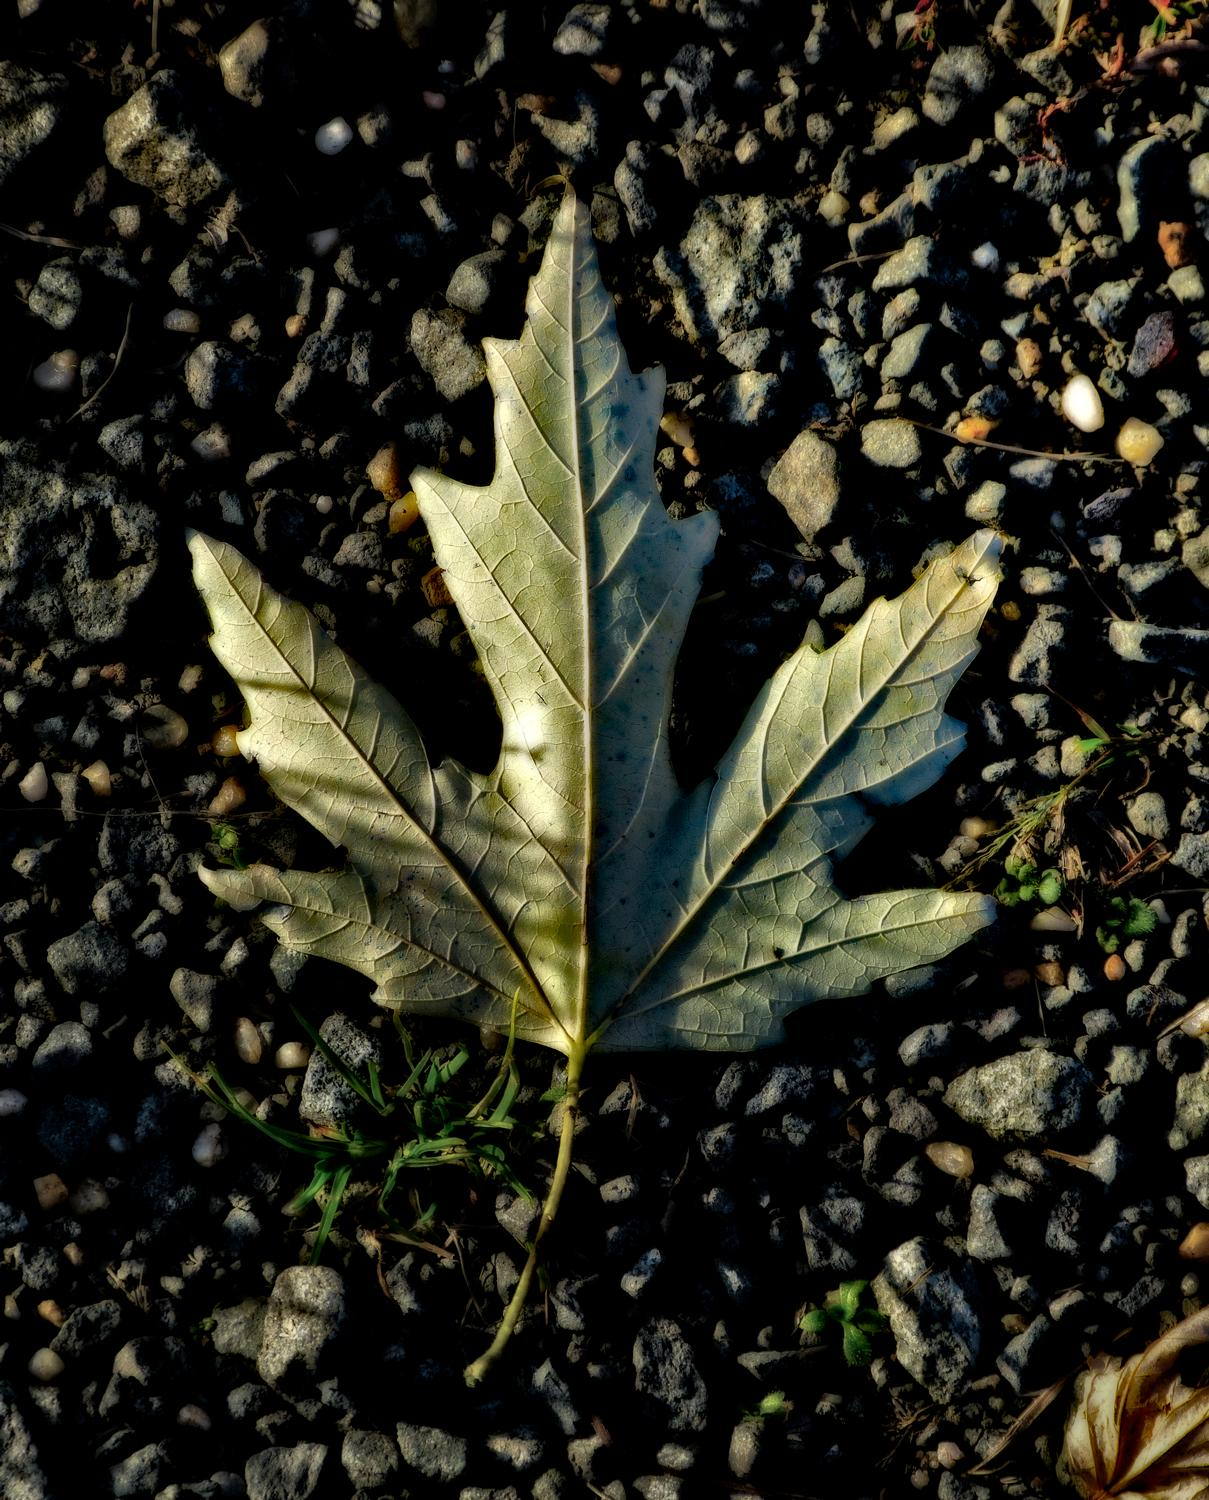 - A leaf on gravel - Panasonic DMC-FZ150 <br>--- Click to see ORIGINAL --- -  Panasonic DMC-FZ150 - Tony Karp, design, art, photography, techno-impressionist, techno-impressionism, aerial photography , drone , drones , dji , mavic pro , video , 3D printing - Books -